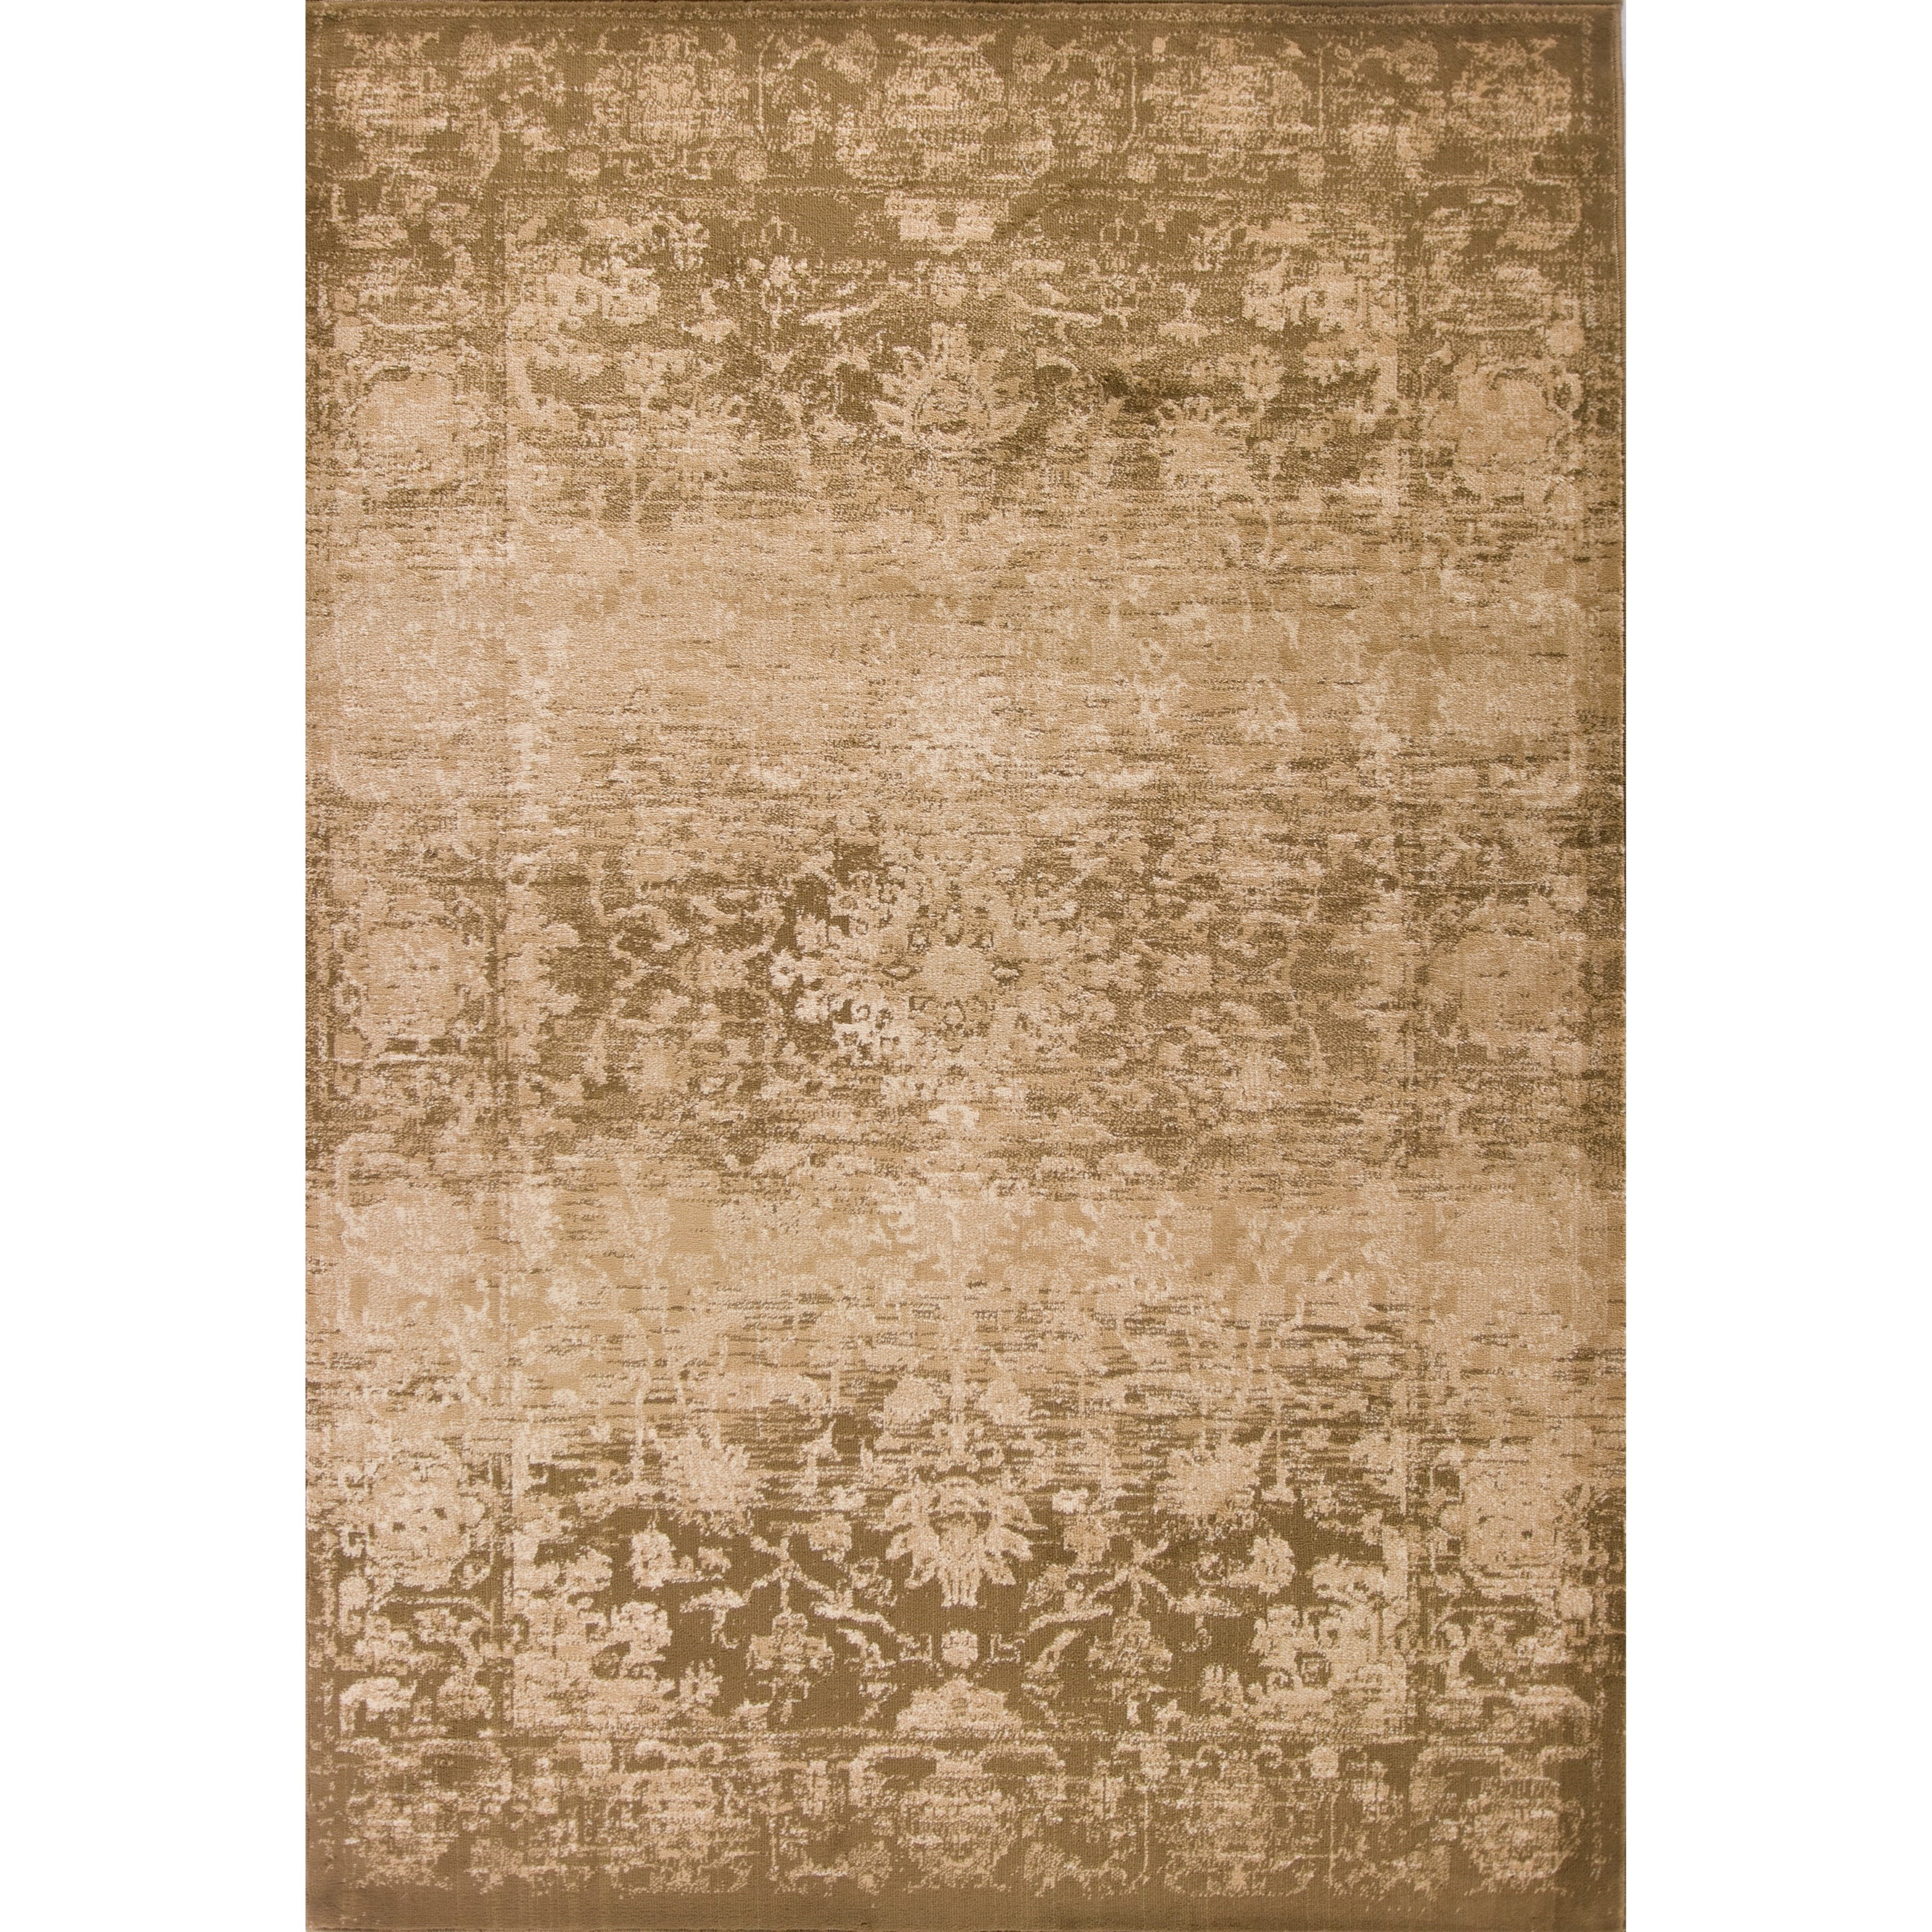 """Heritage 3'3"""" X 4'11"""" Beige Serenity Area Rug by Kas at Zak's Home"""